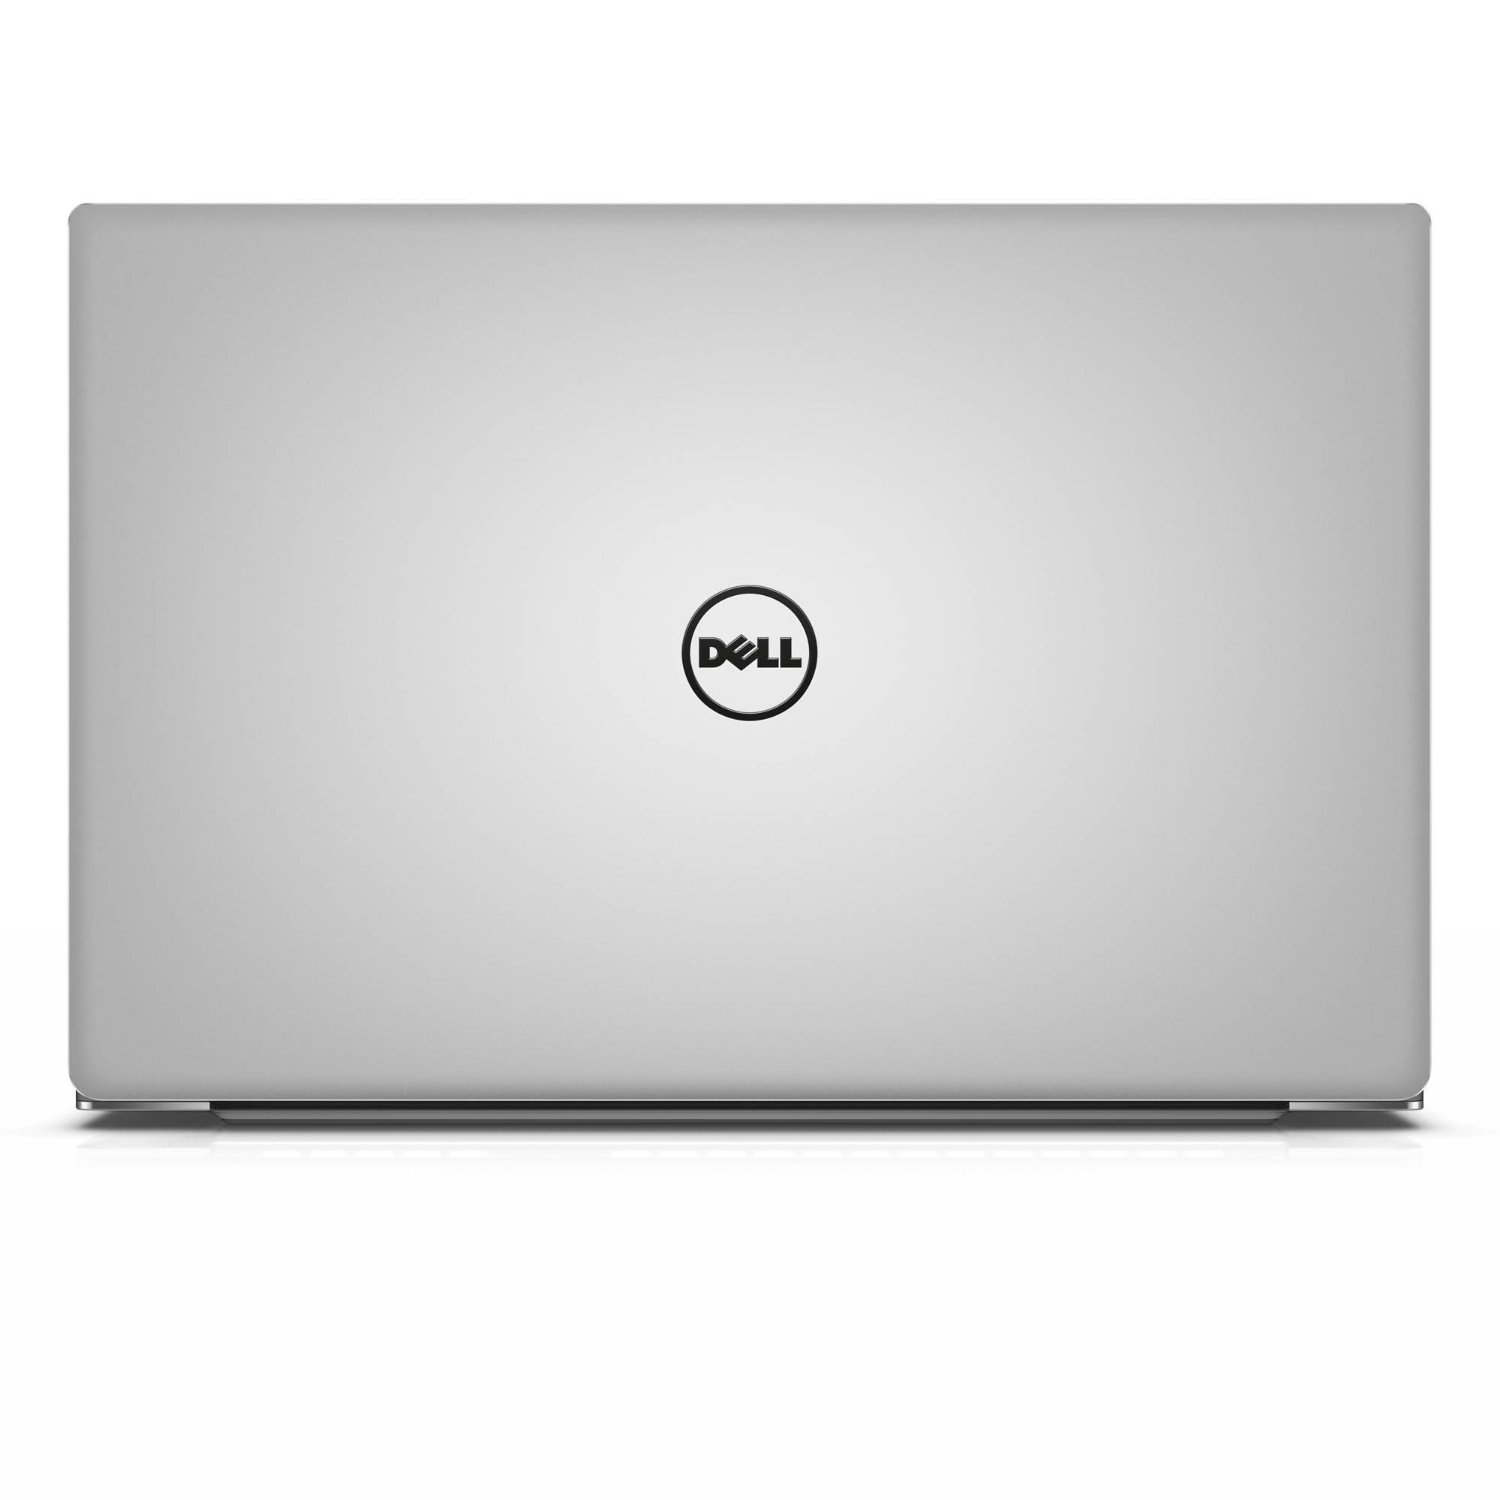 Dell Xps 13 Windows 10 Drivers